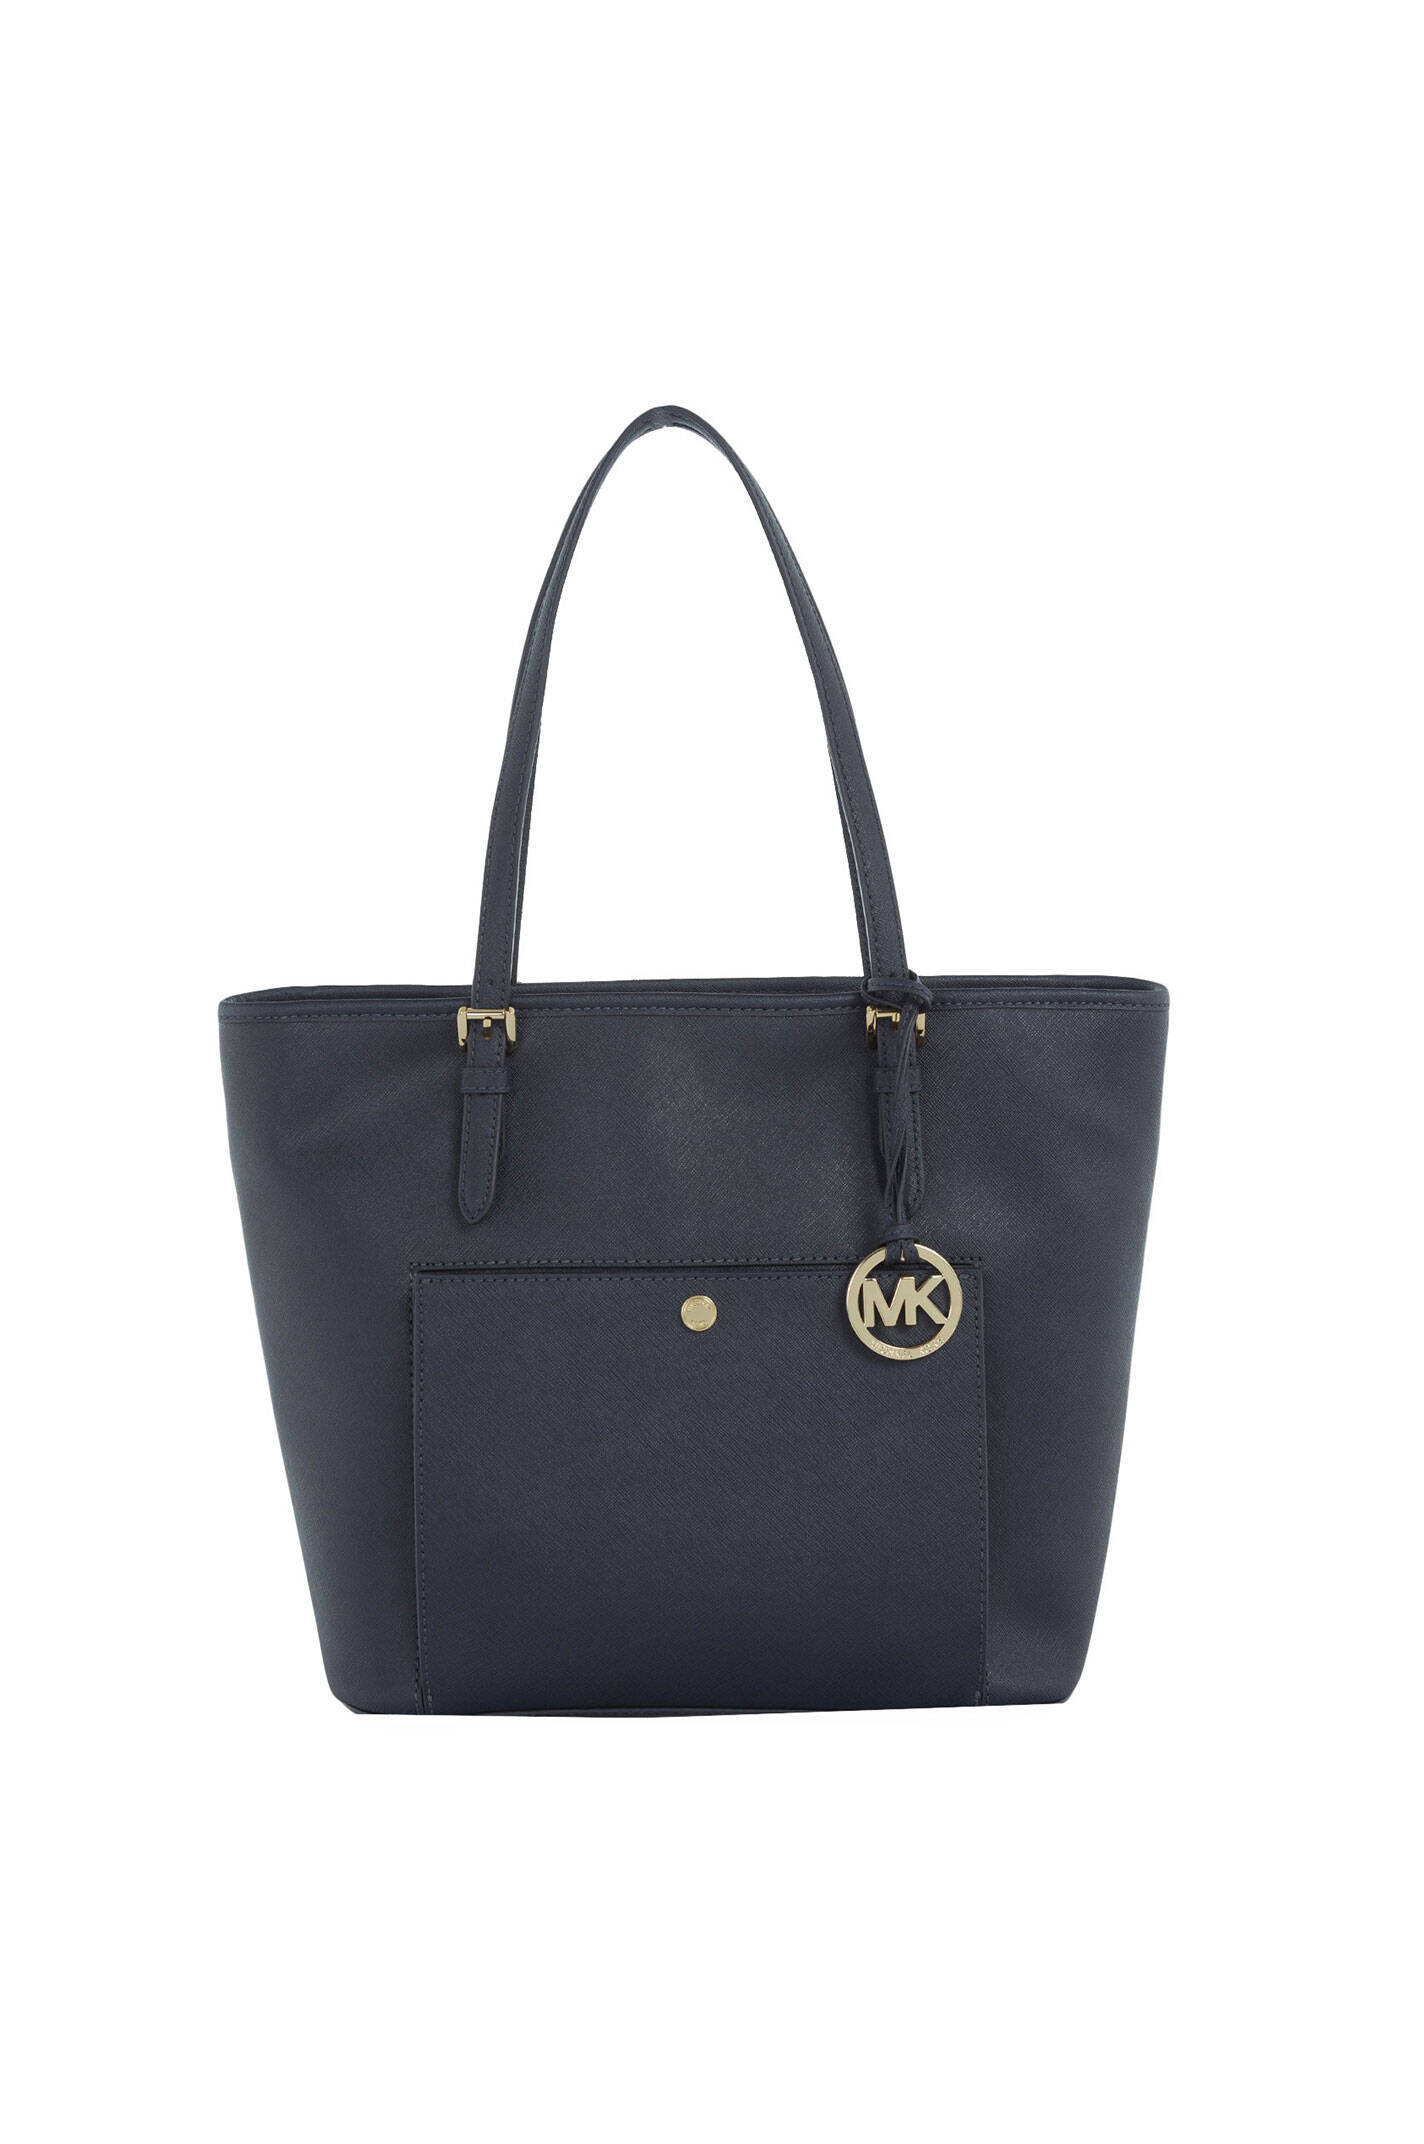 jet set item shopper bag michael kors navy blue bags. Black Bedroom Furniture Sets. Home Design Ideas